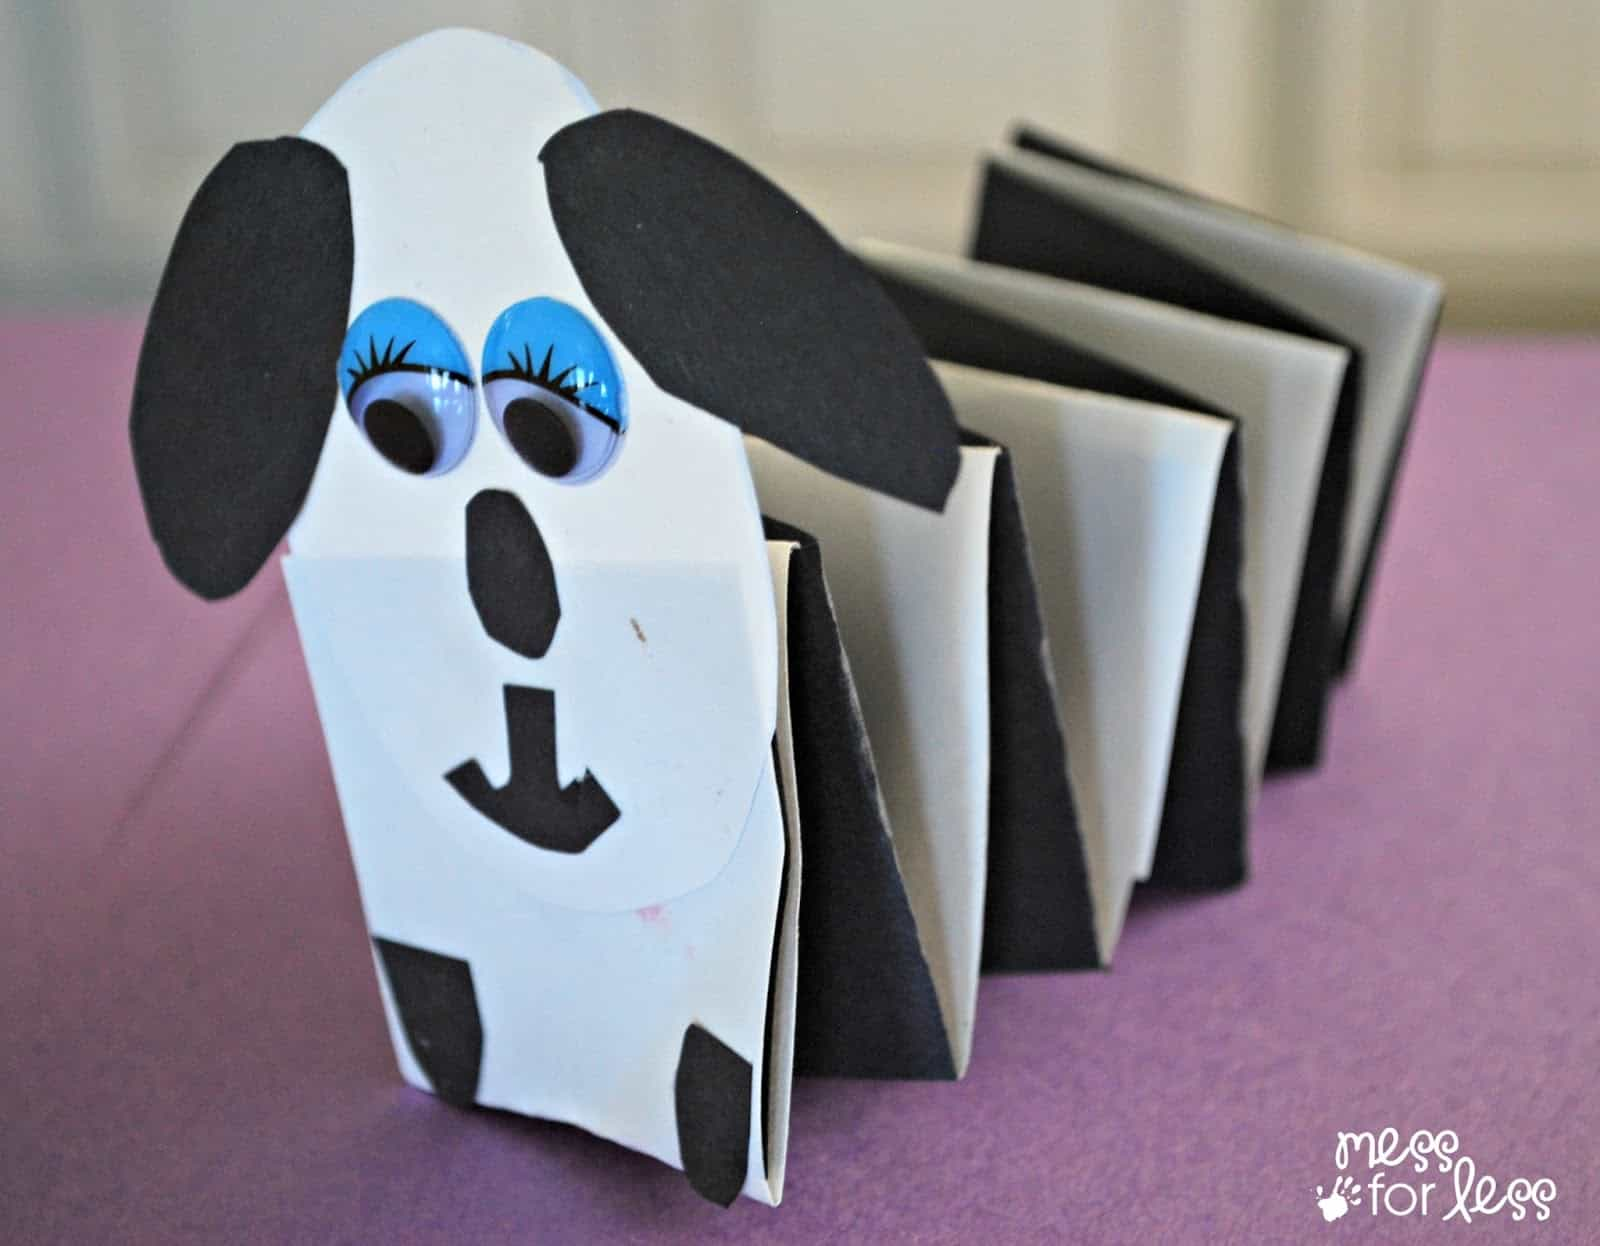 Paper Crafts For Kids Spring Dog Mess For Less